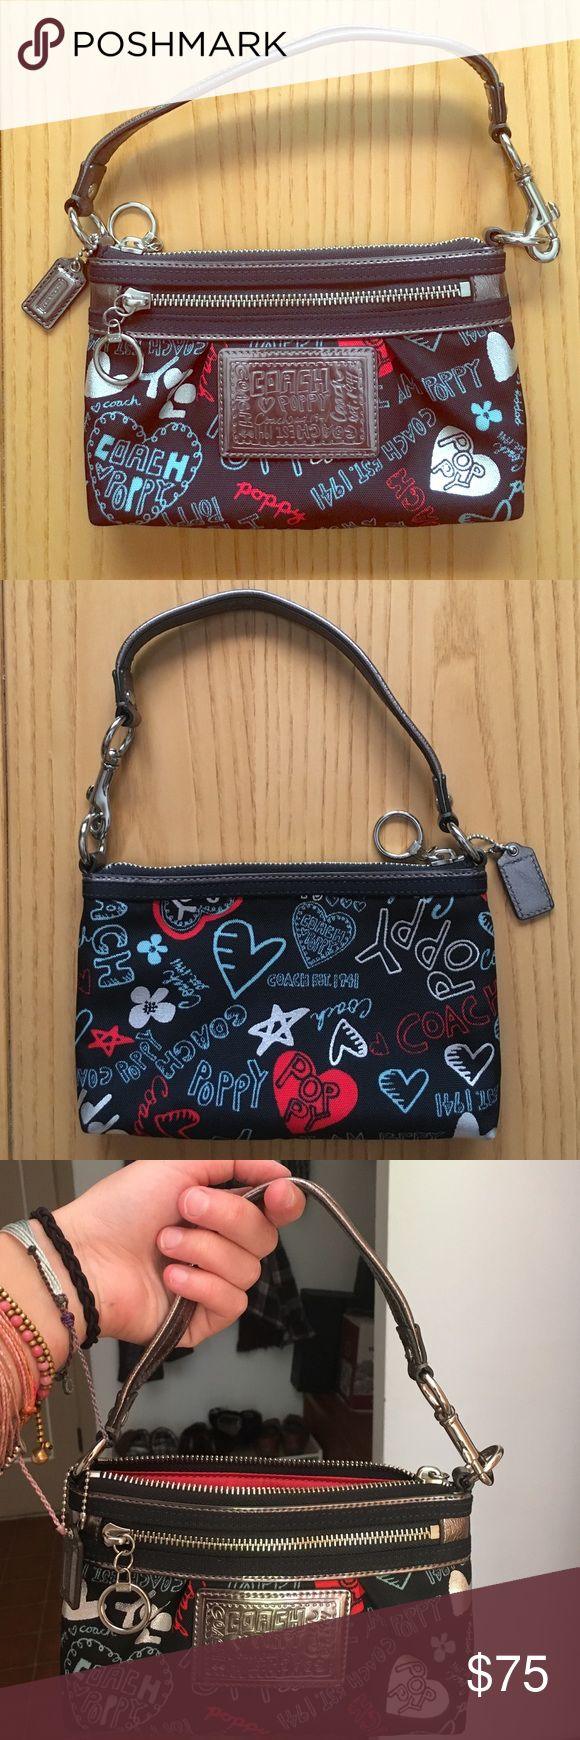 Mini Coach Poppy Purse Never used mini Coach Poppy designer purse Coach Bags Mini Bags